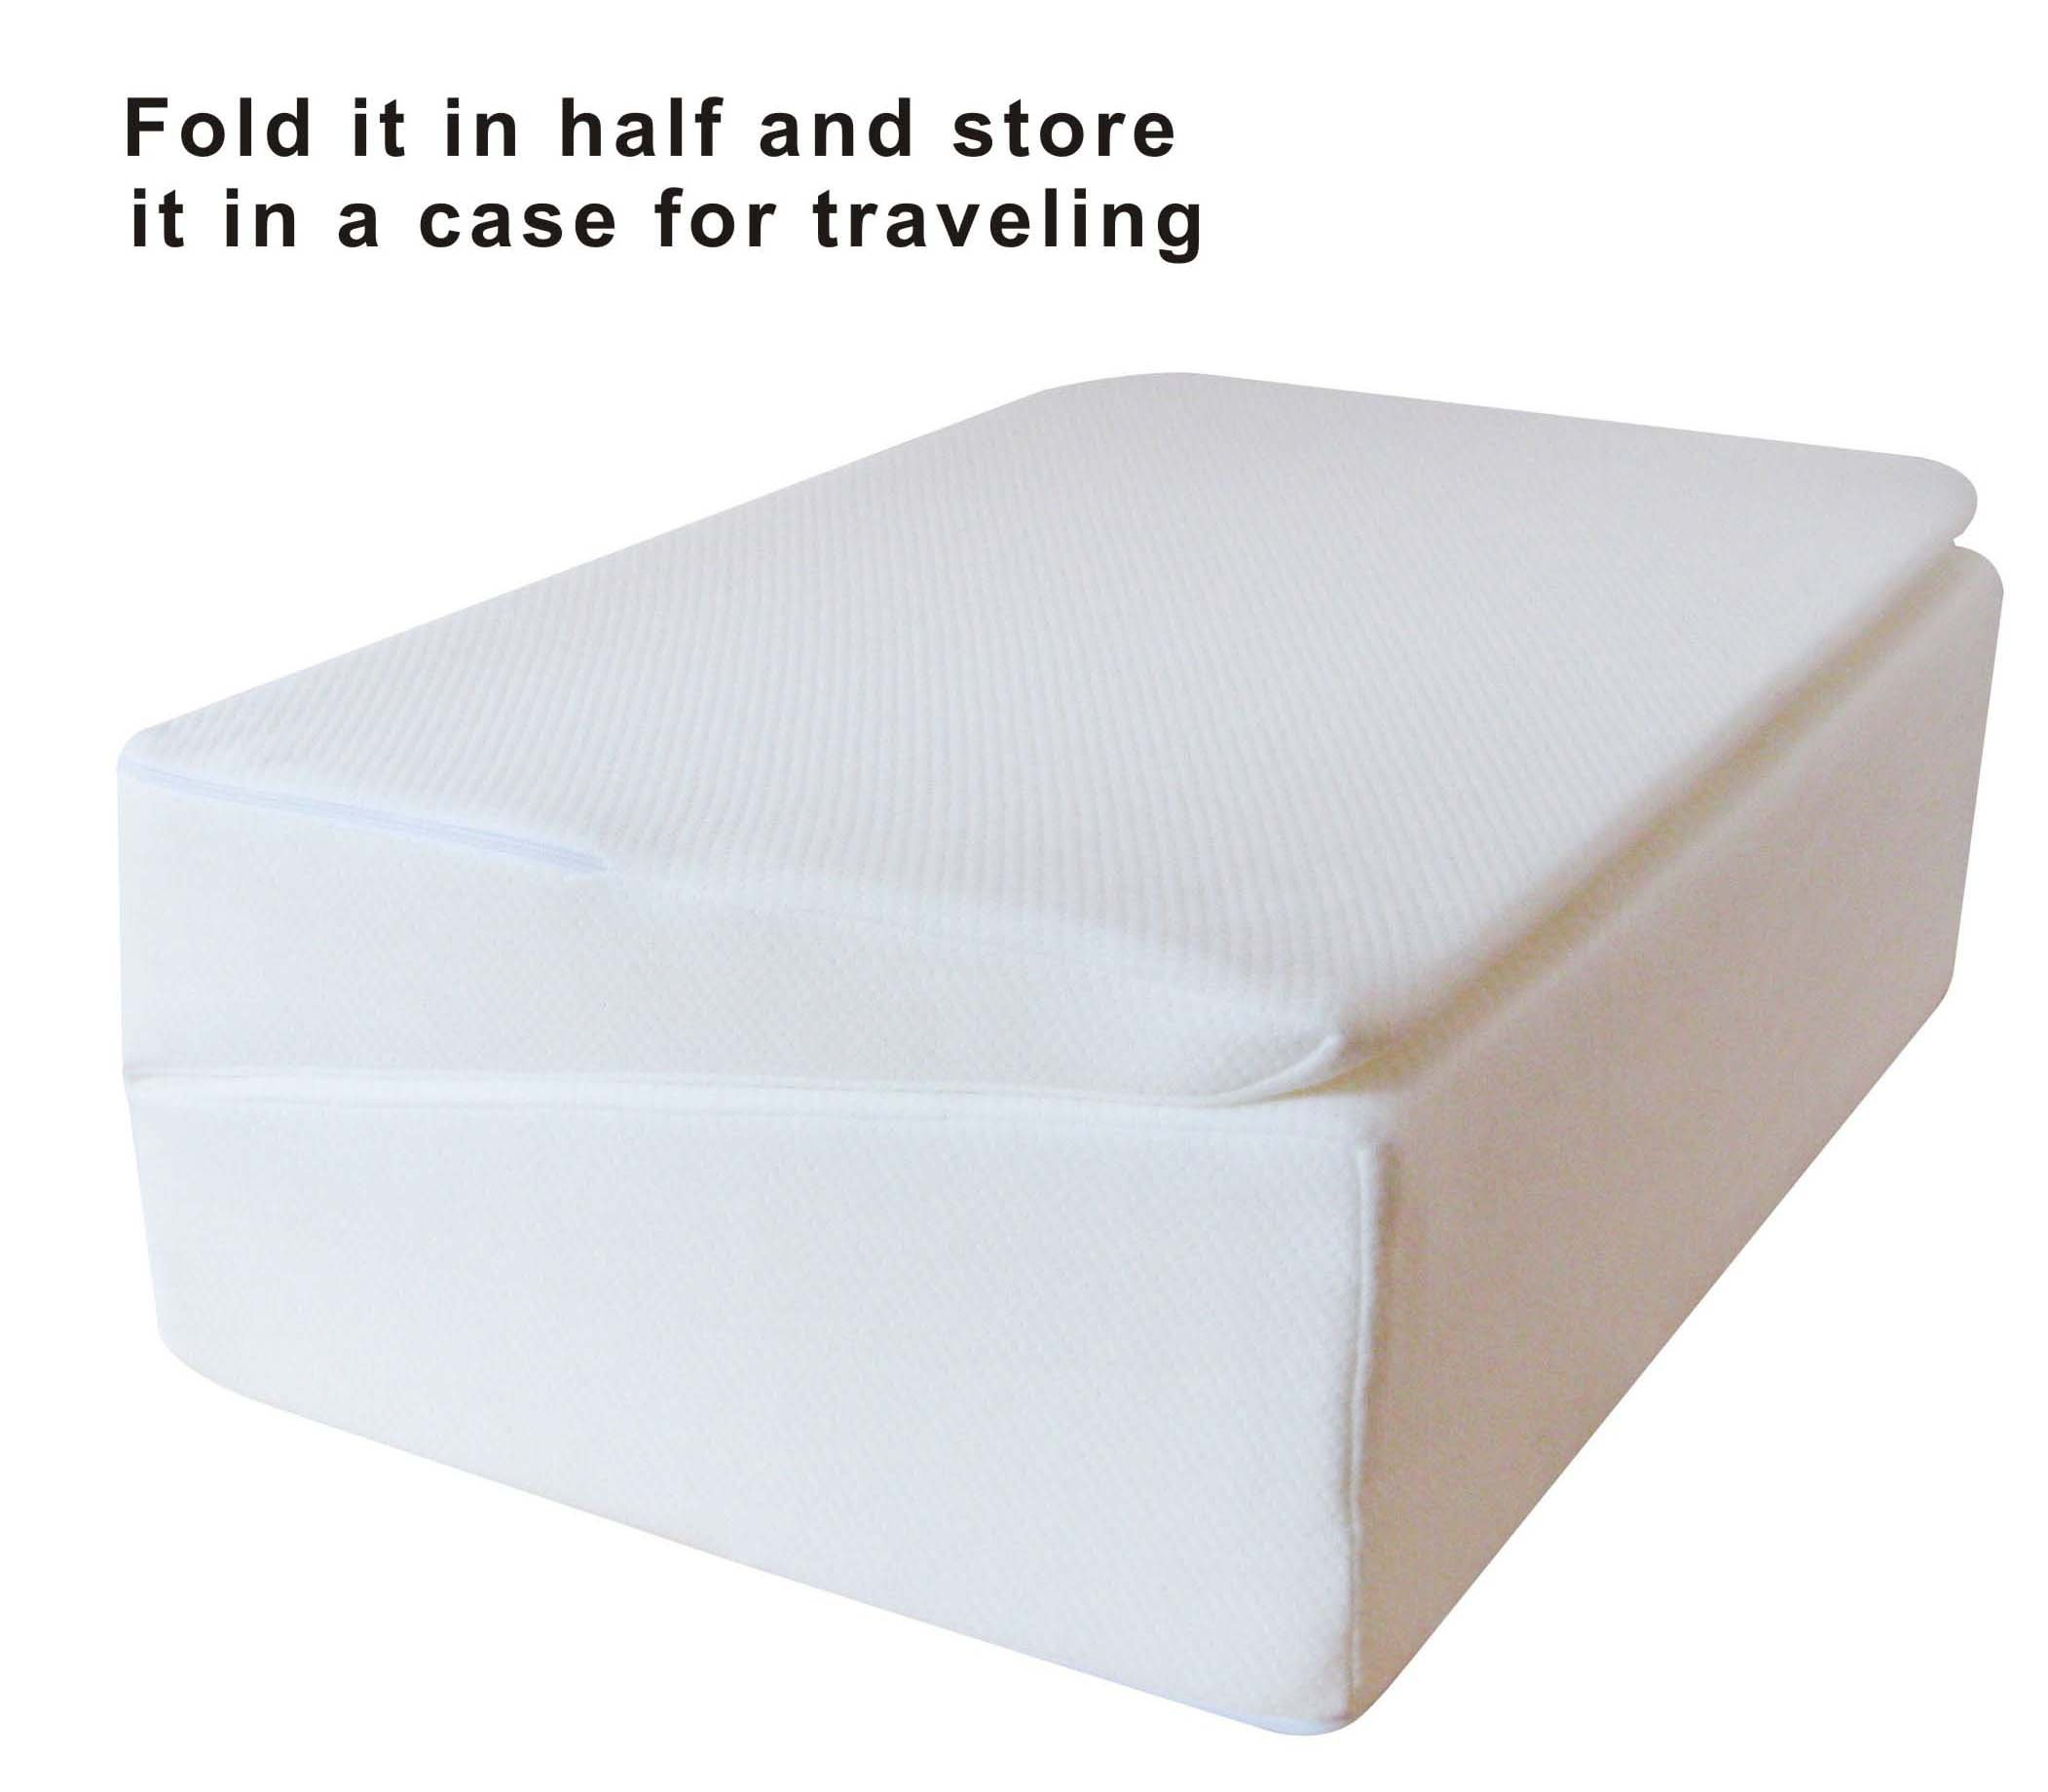 InteVision Folding Wedge Bed Pillow (32'' x 25'' x 6.5'') with a Carrying Case by InteVision (Image #4)